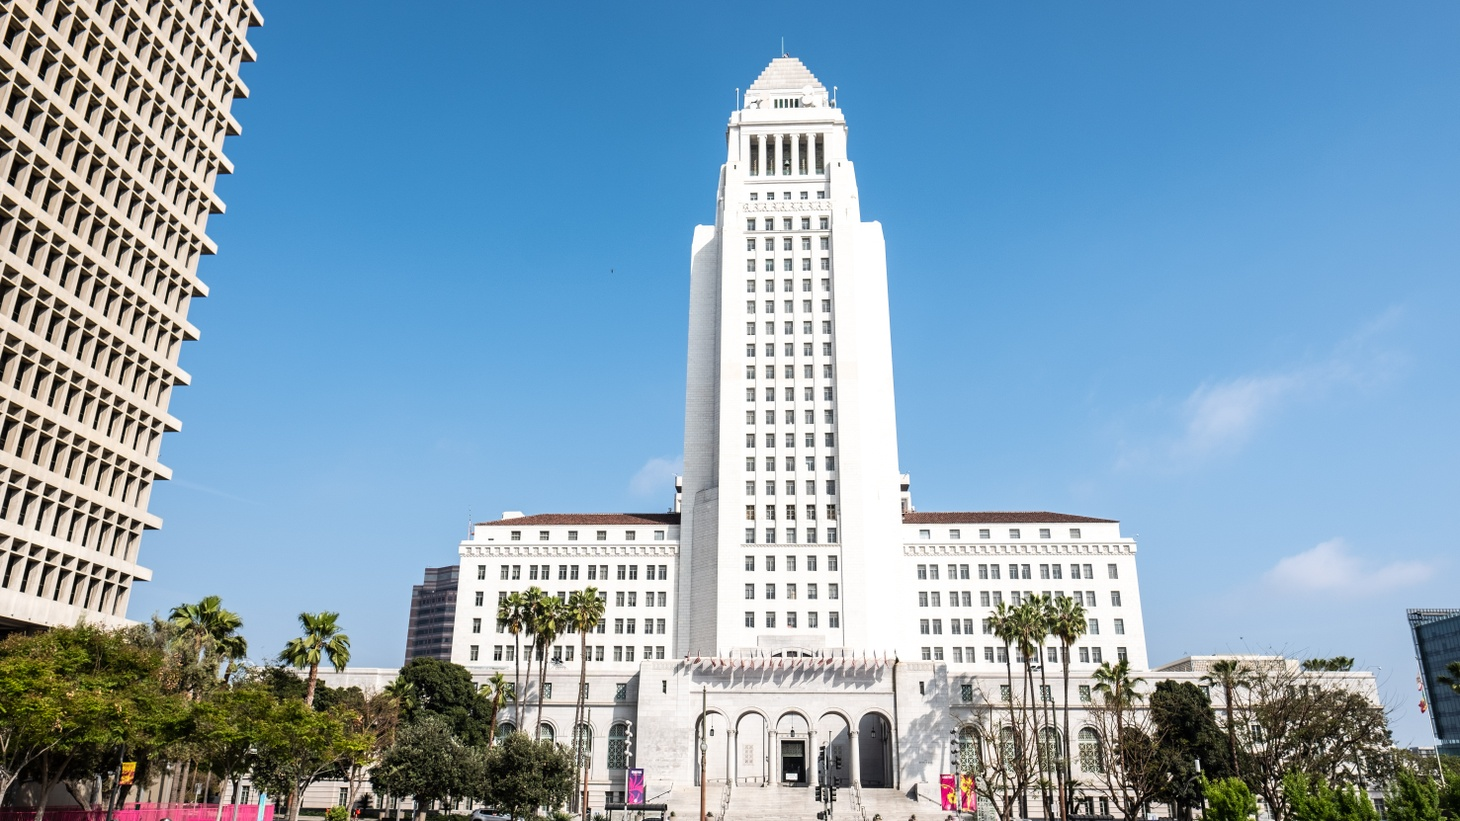 There's an ongoing FBI investigation into illicit activities at LA City Hall.